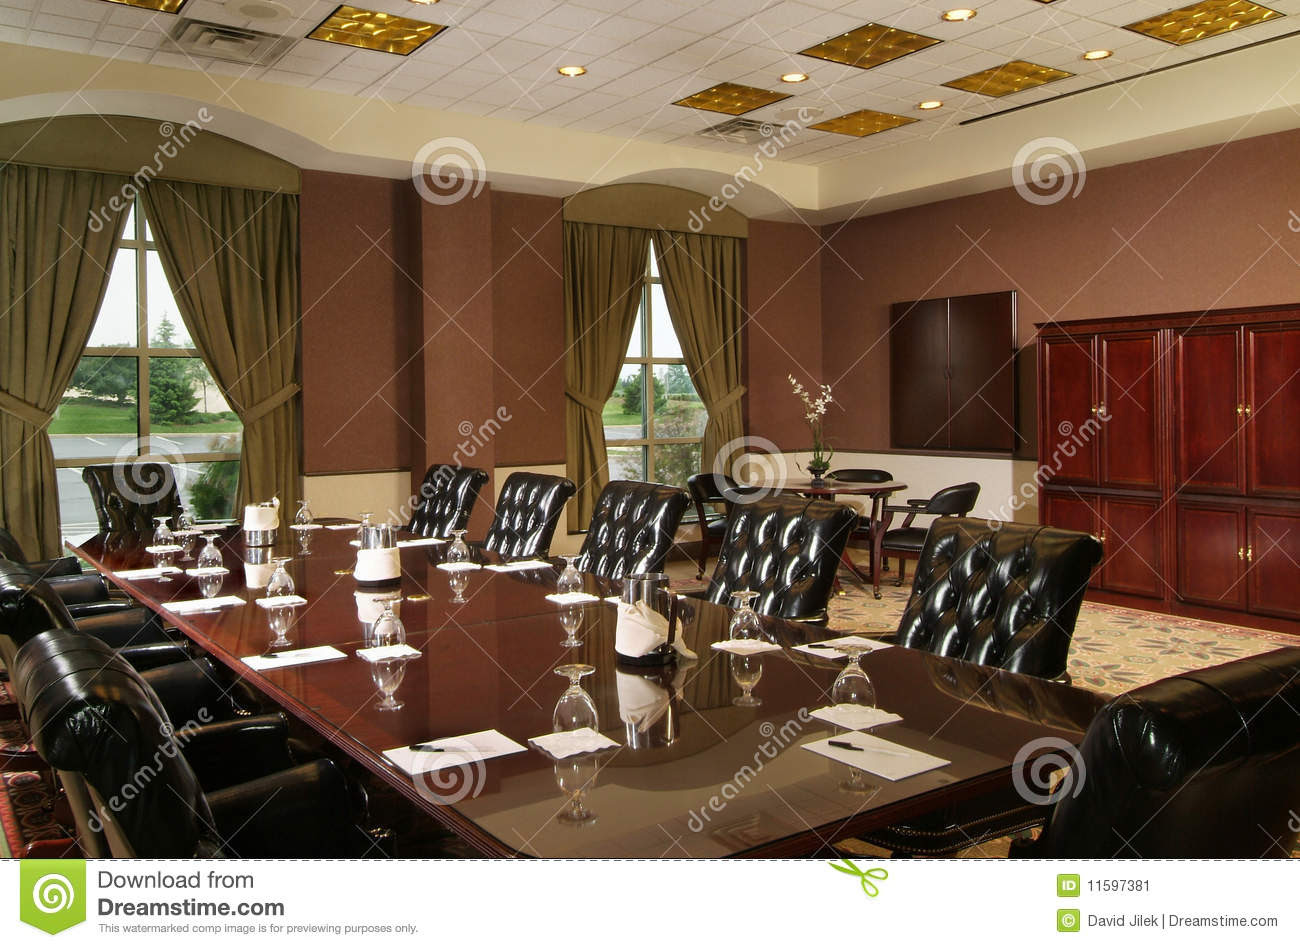 Luxury Conference Room Stock Image - Image: 11597381